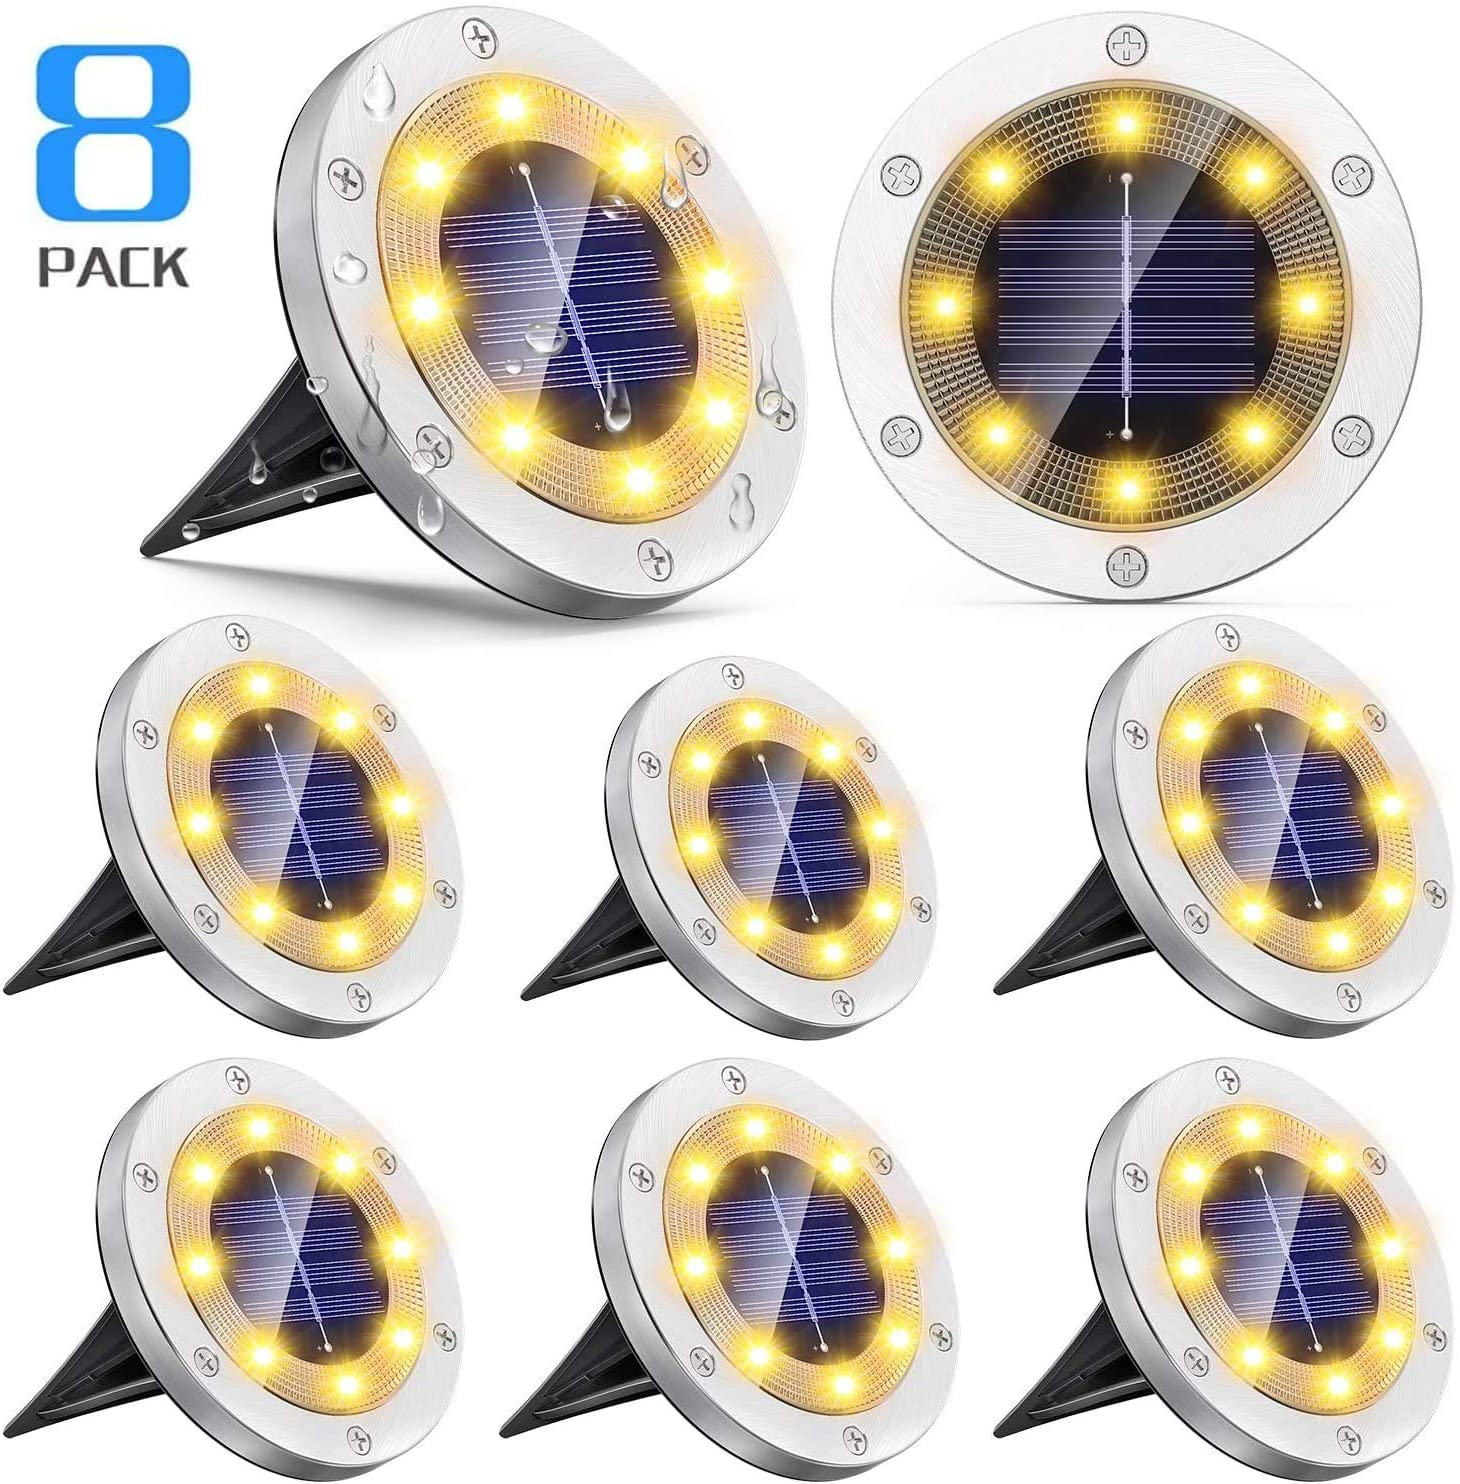 Solar Ground Lights Outdoor 8 Pack, Vosaro 8 LED Solar Garden Lights Waterproof, Upgraded Solar Powered Disk Lights, Landscape Lighting for Lawn Pathway Driveway Garden Yard Patio, Warm White